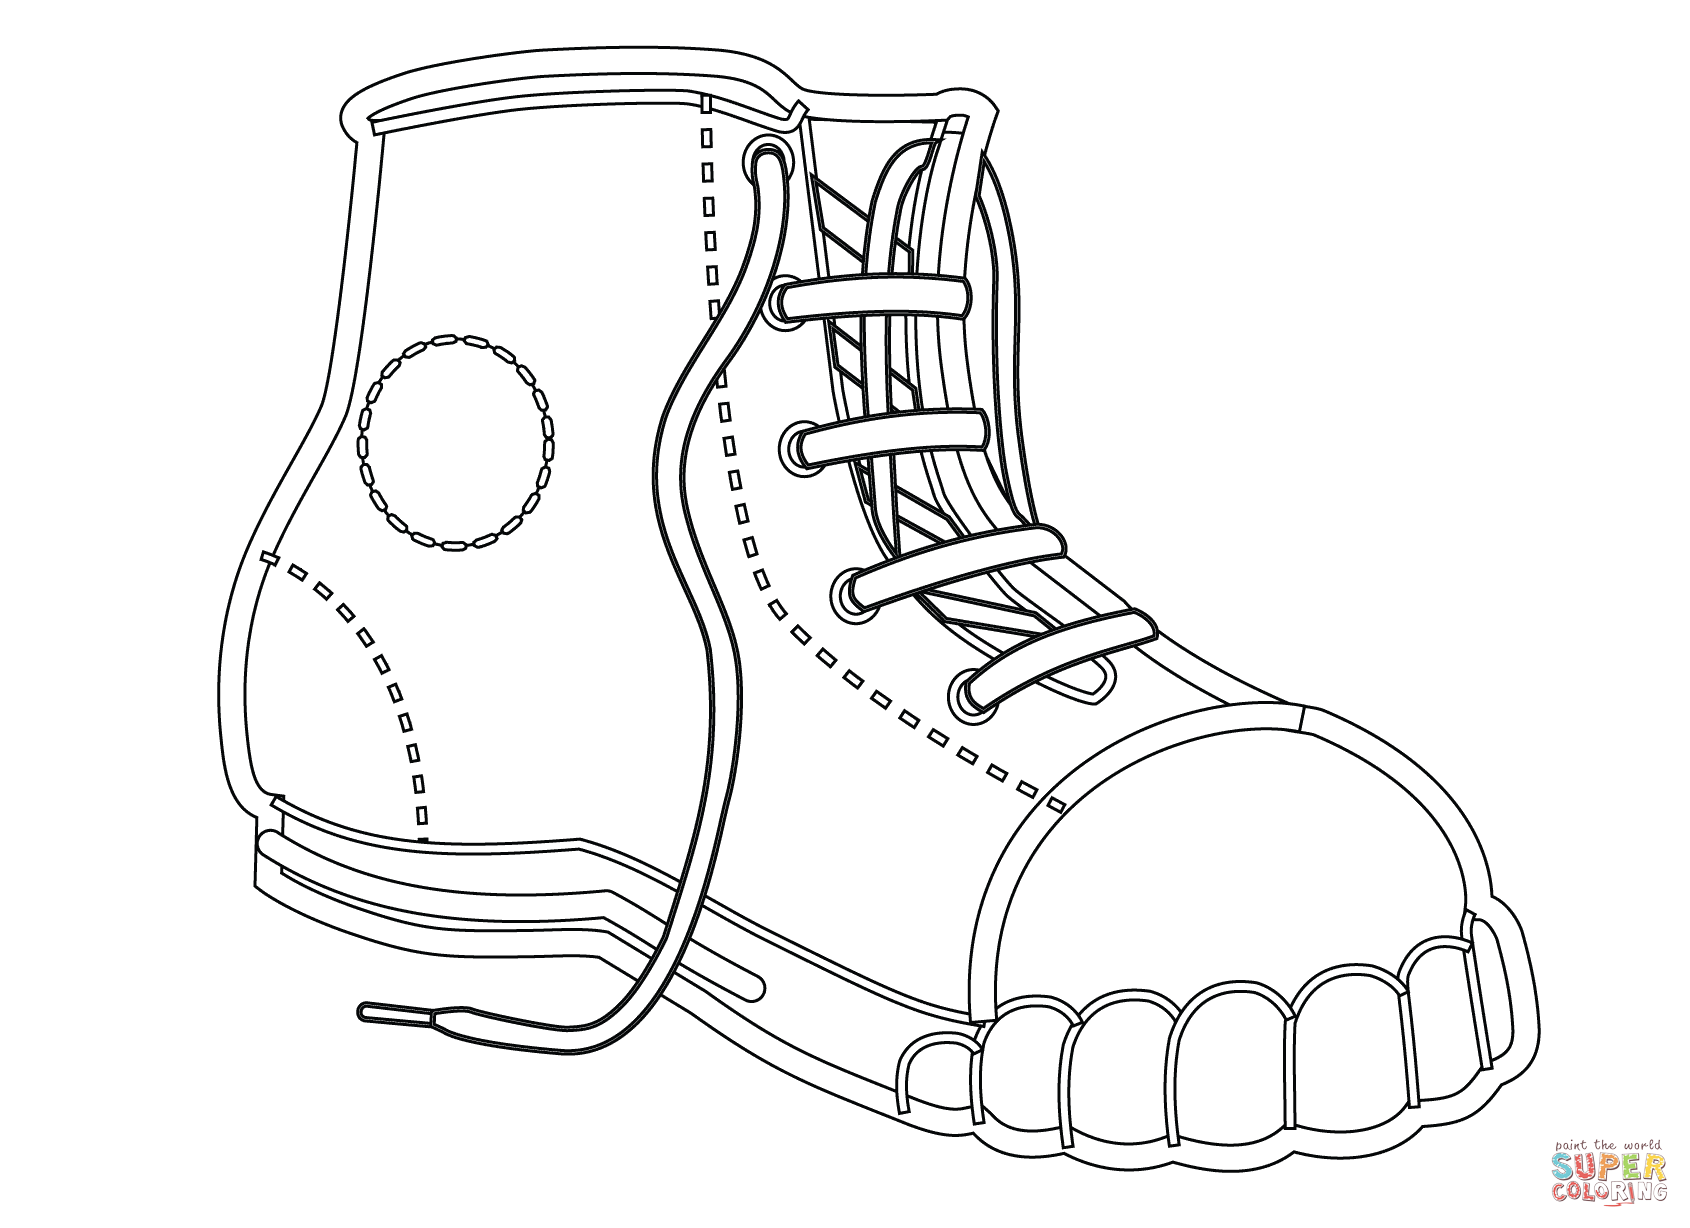 Gallery Shoe Outline Drawing at GetDrawings   Free download is free HD wallpaper.